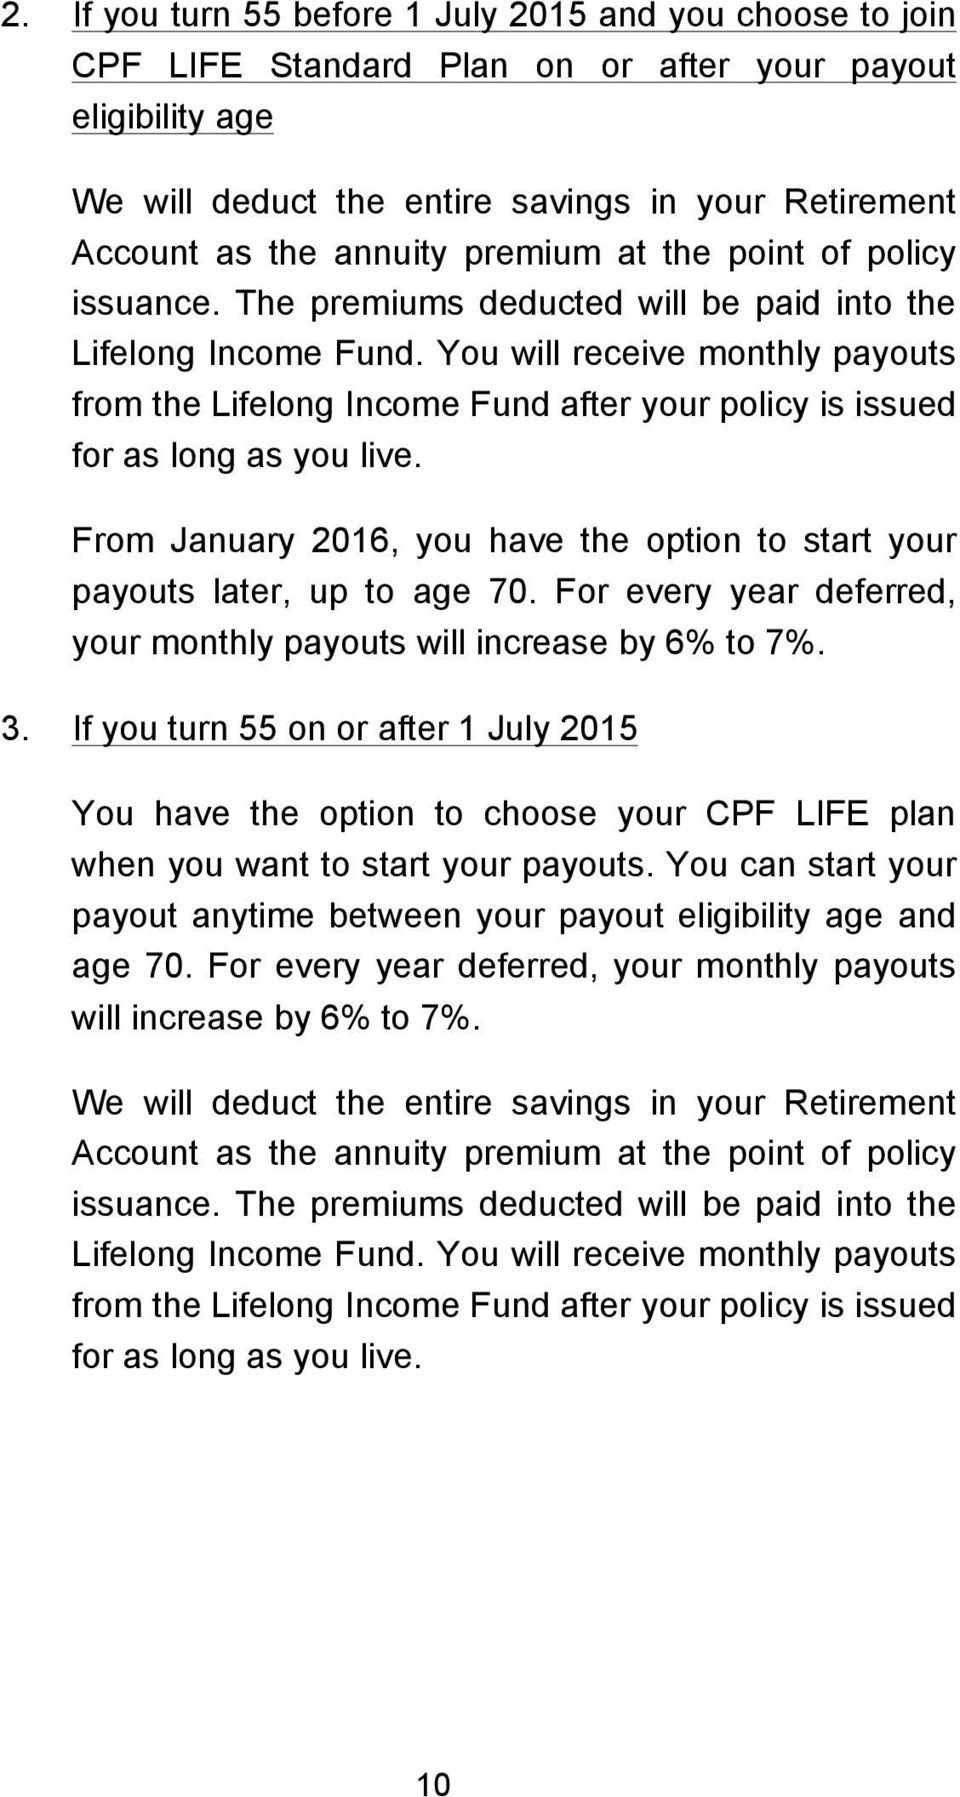 You will receive monthly payouts from the Lifelong Income Fund after your policy is issued for as long as you live. From January 2016, you have the option to start your payouts later, up to age 70.